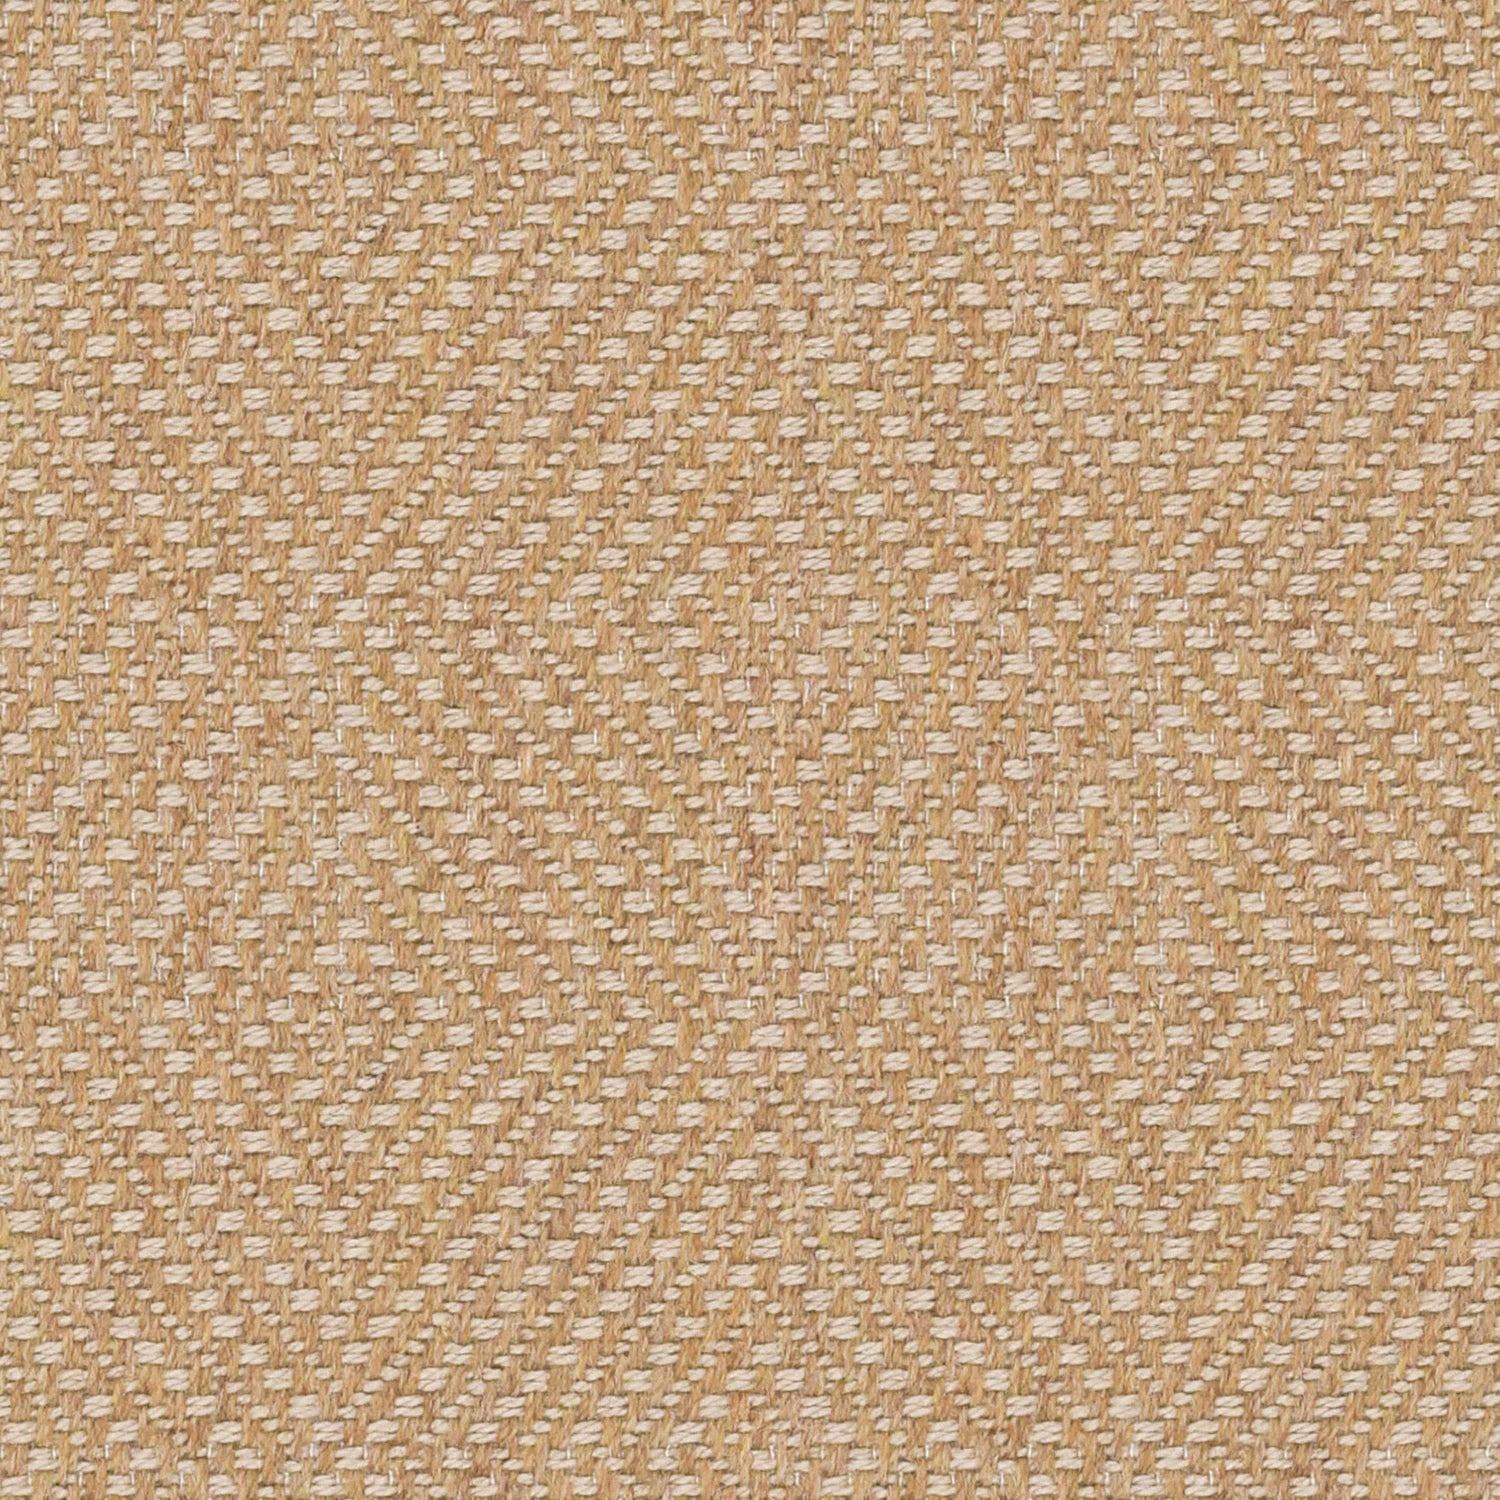 Beige neutral fabric for curtains and upholstery with a light neutral geometric woven design